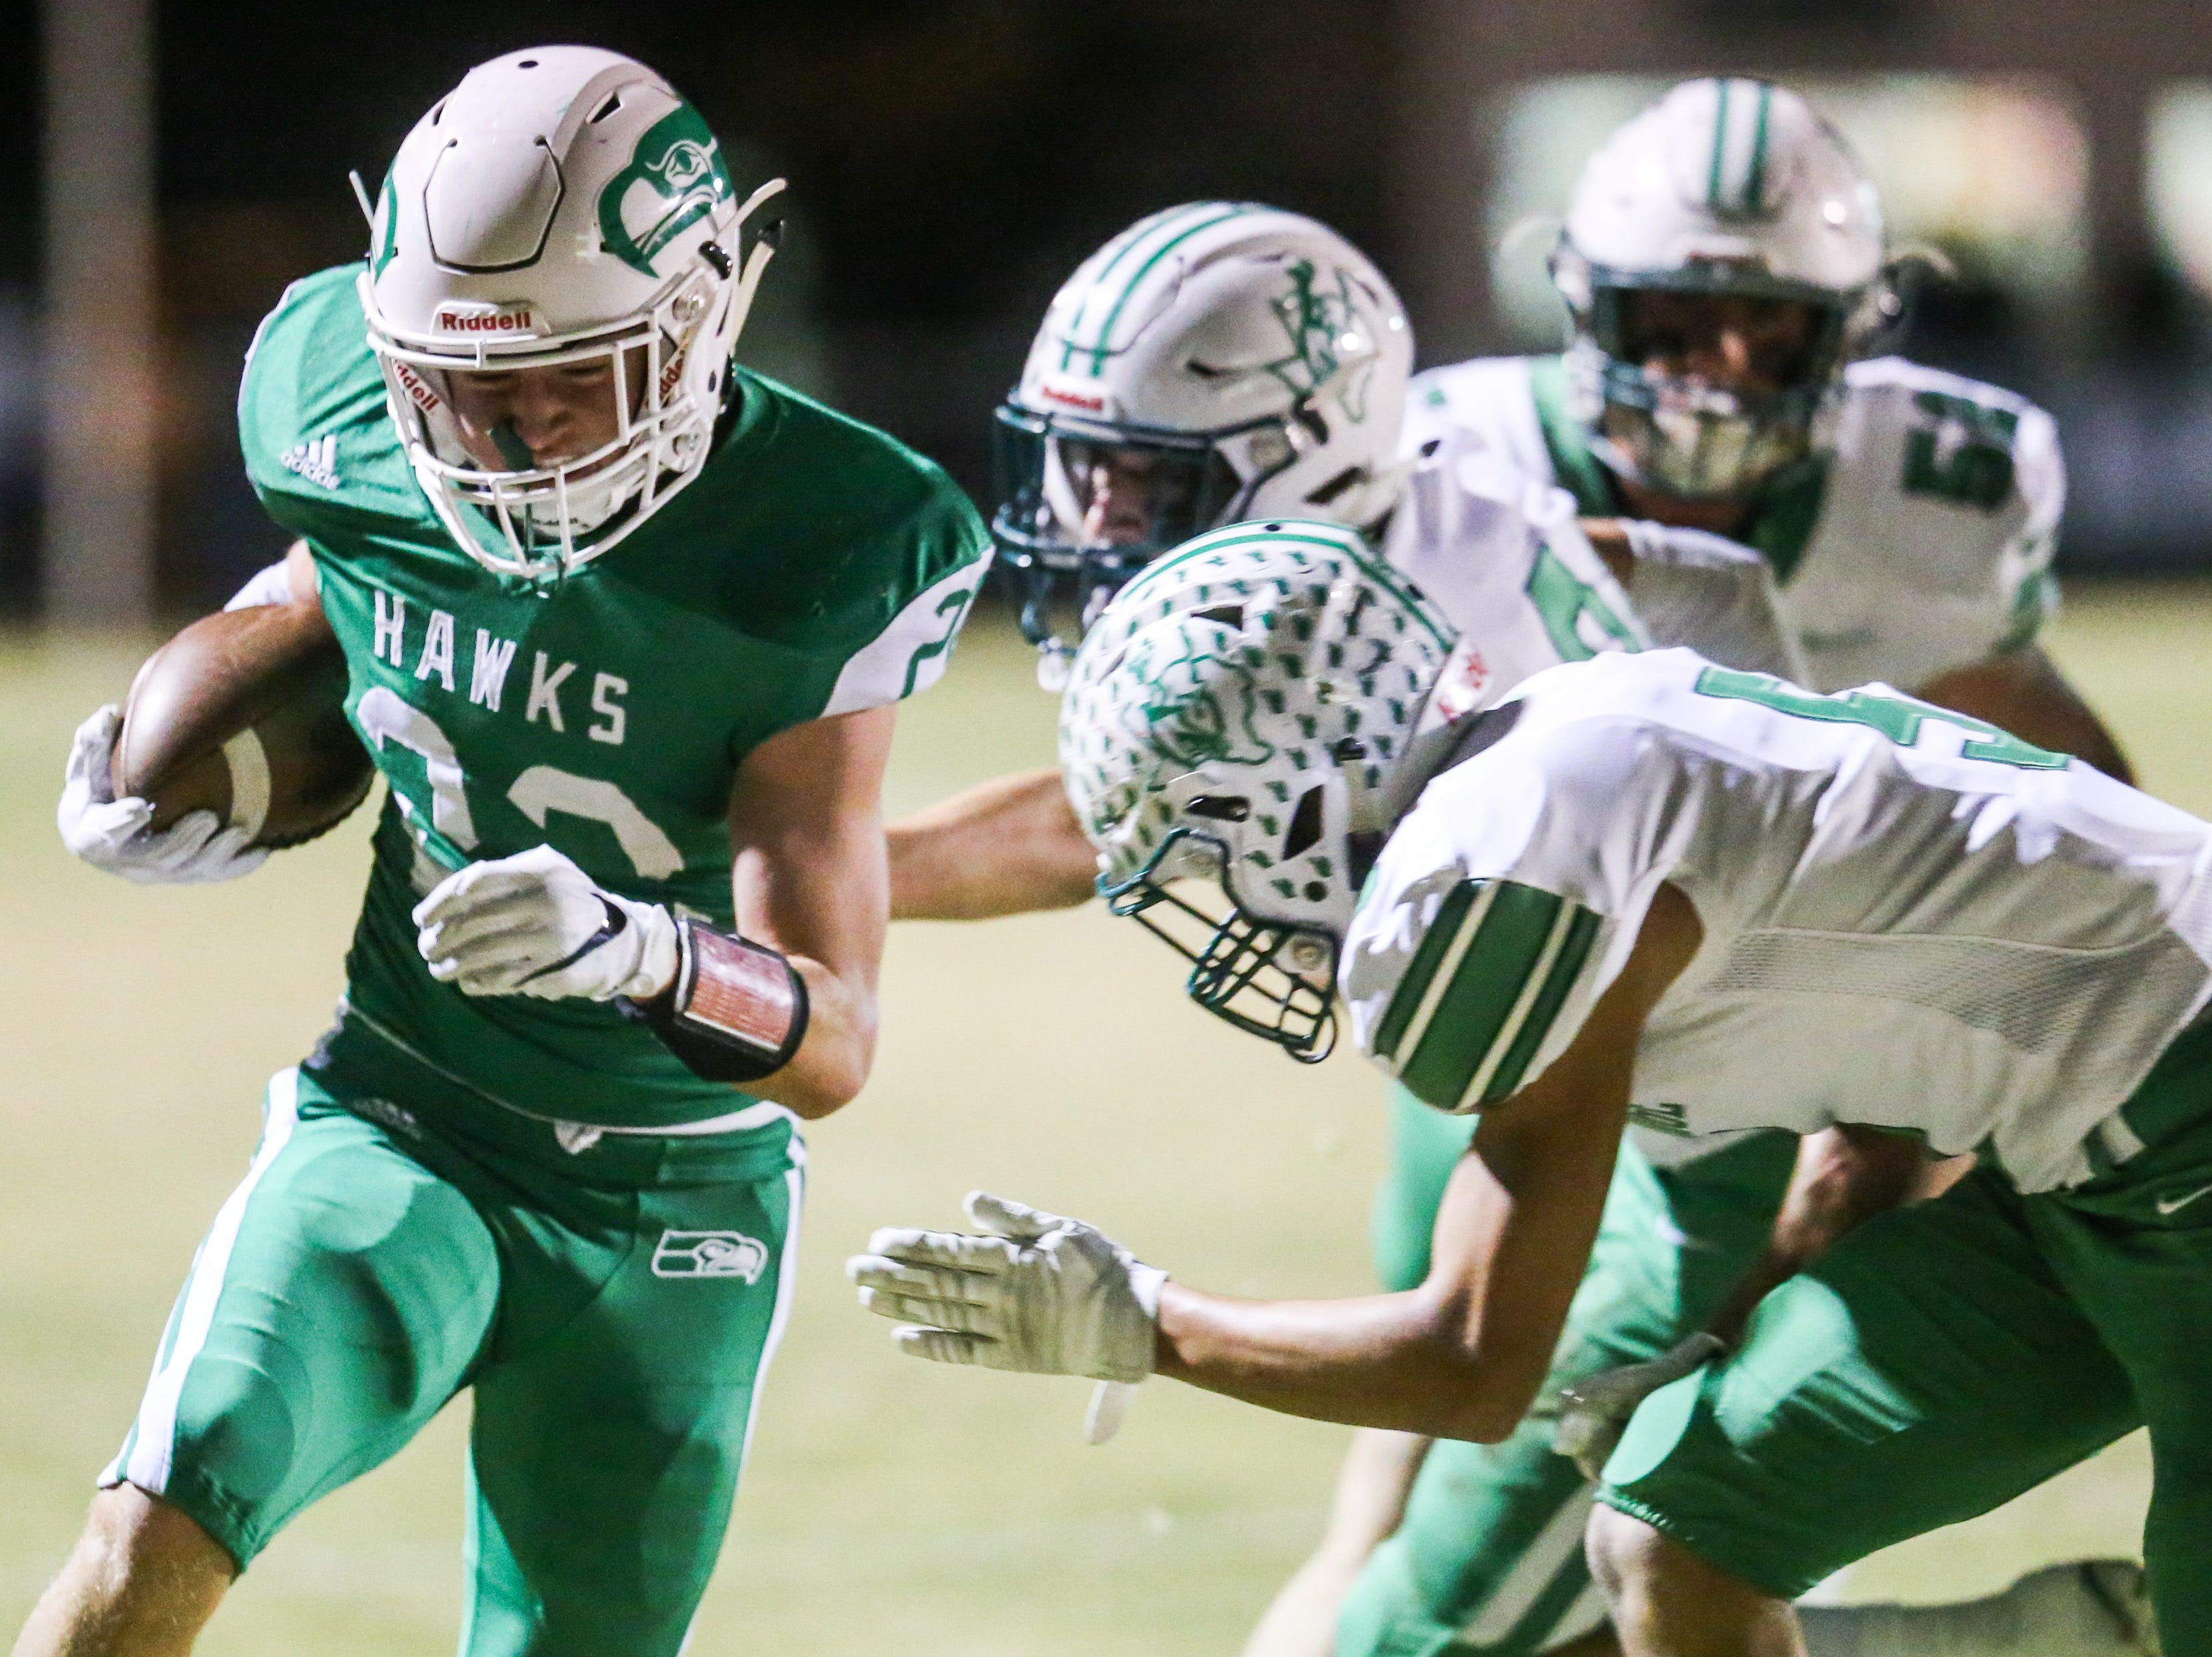 Wall's Mason Kindle runs the ball as Breckenridge defense approaches Friday, Nov. 2, 2018, at Wall.